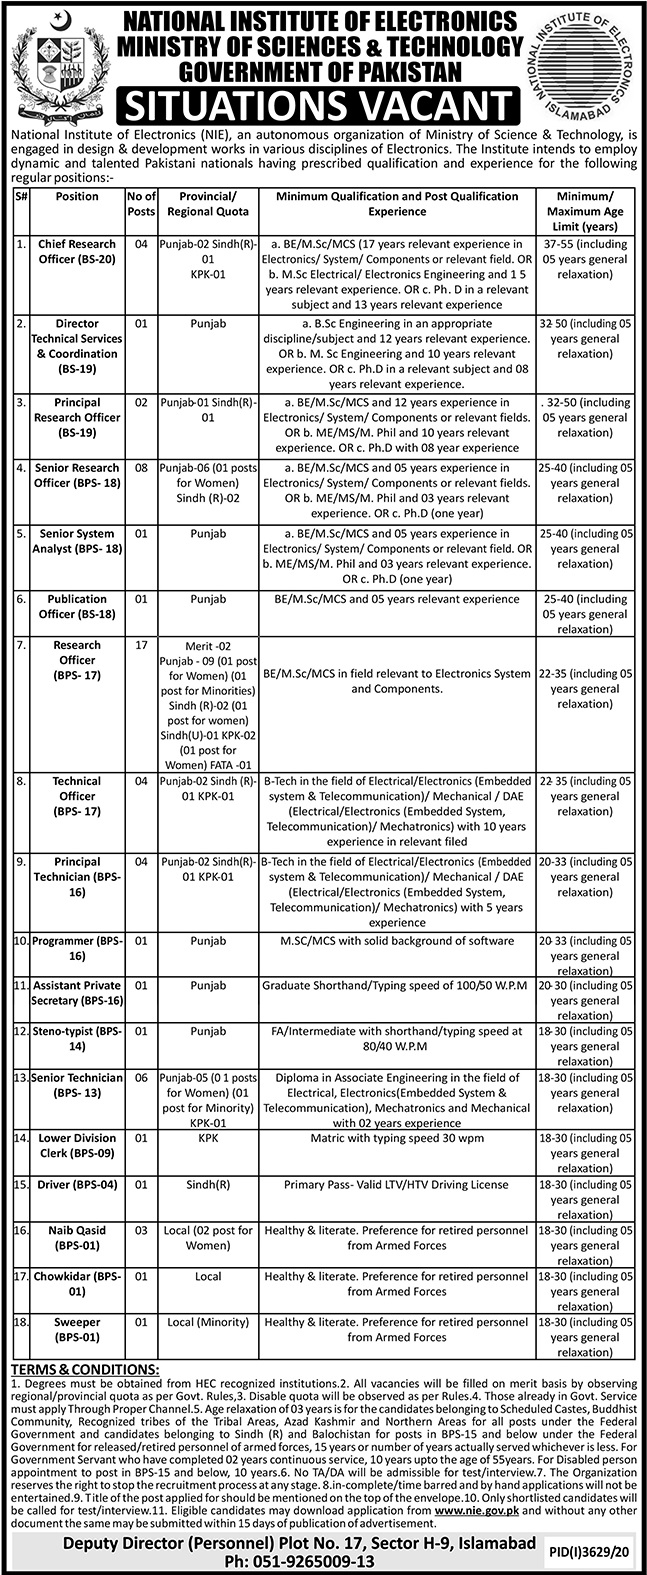 How to apply for Ministry of Science & Technology Pakistan Jobs